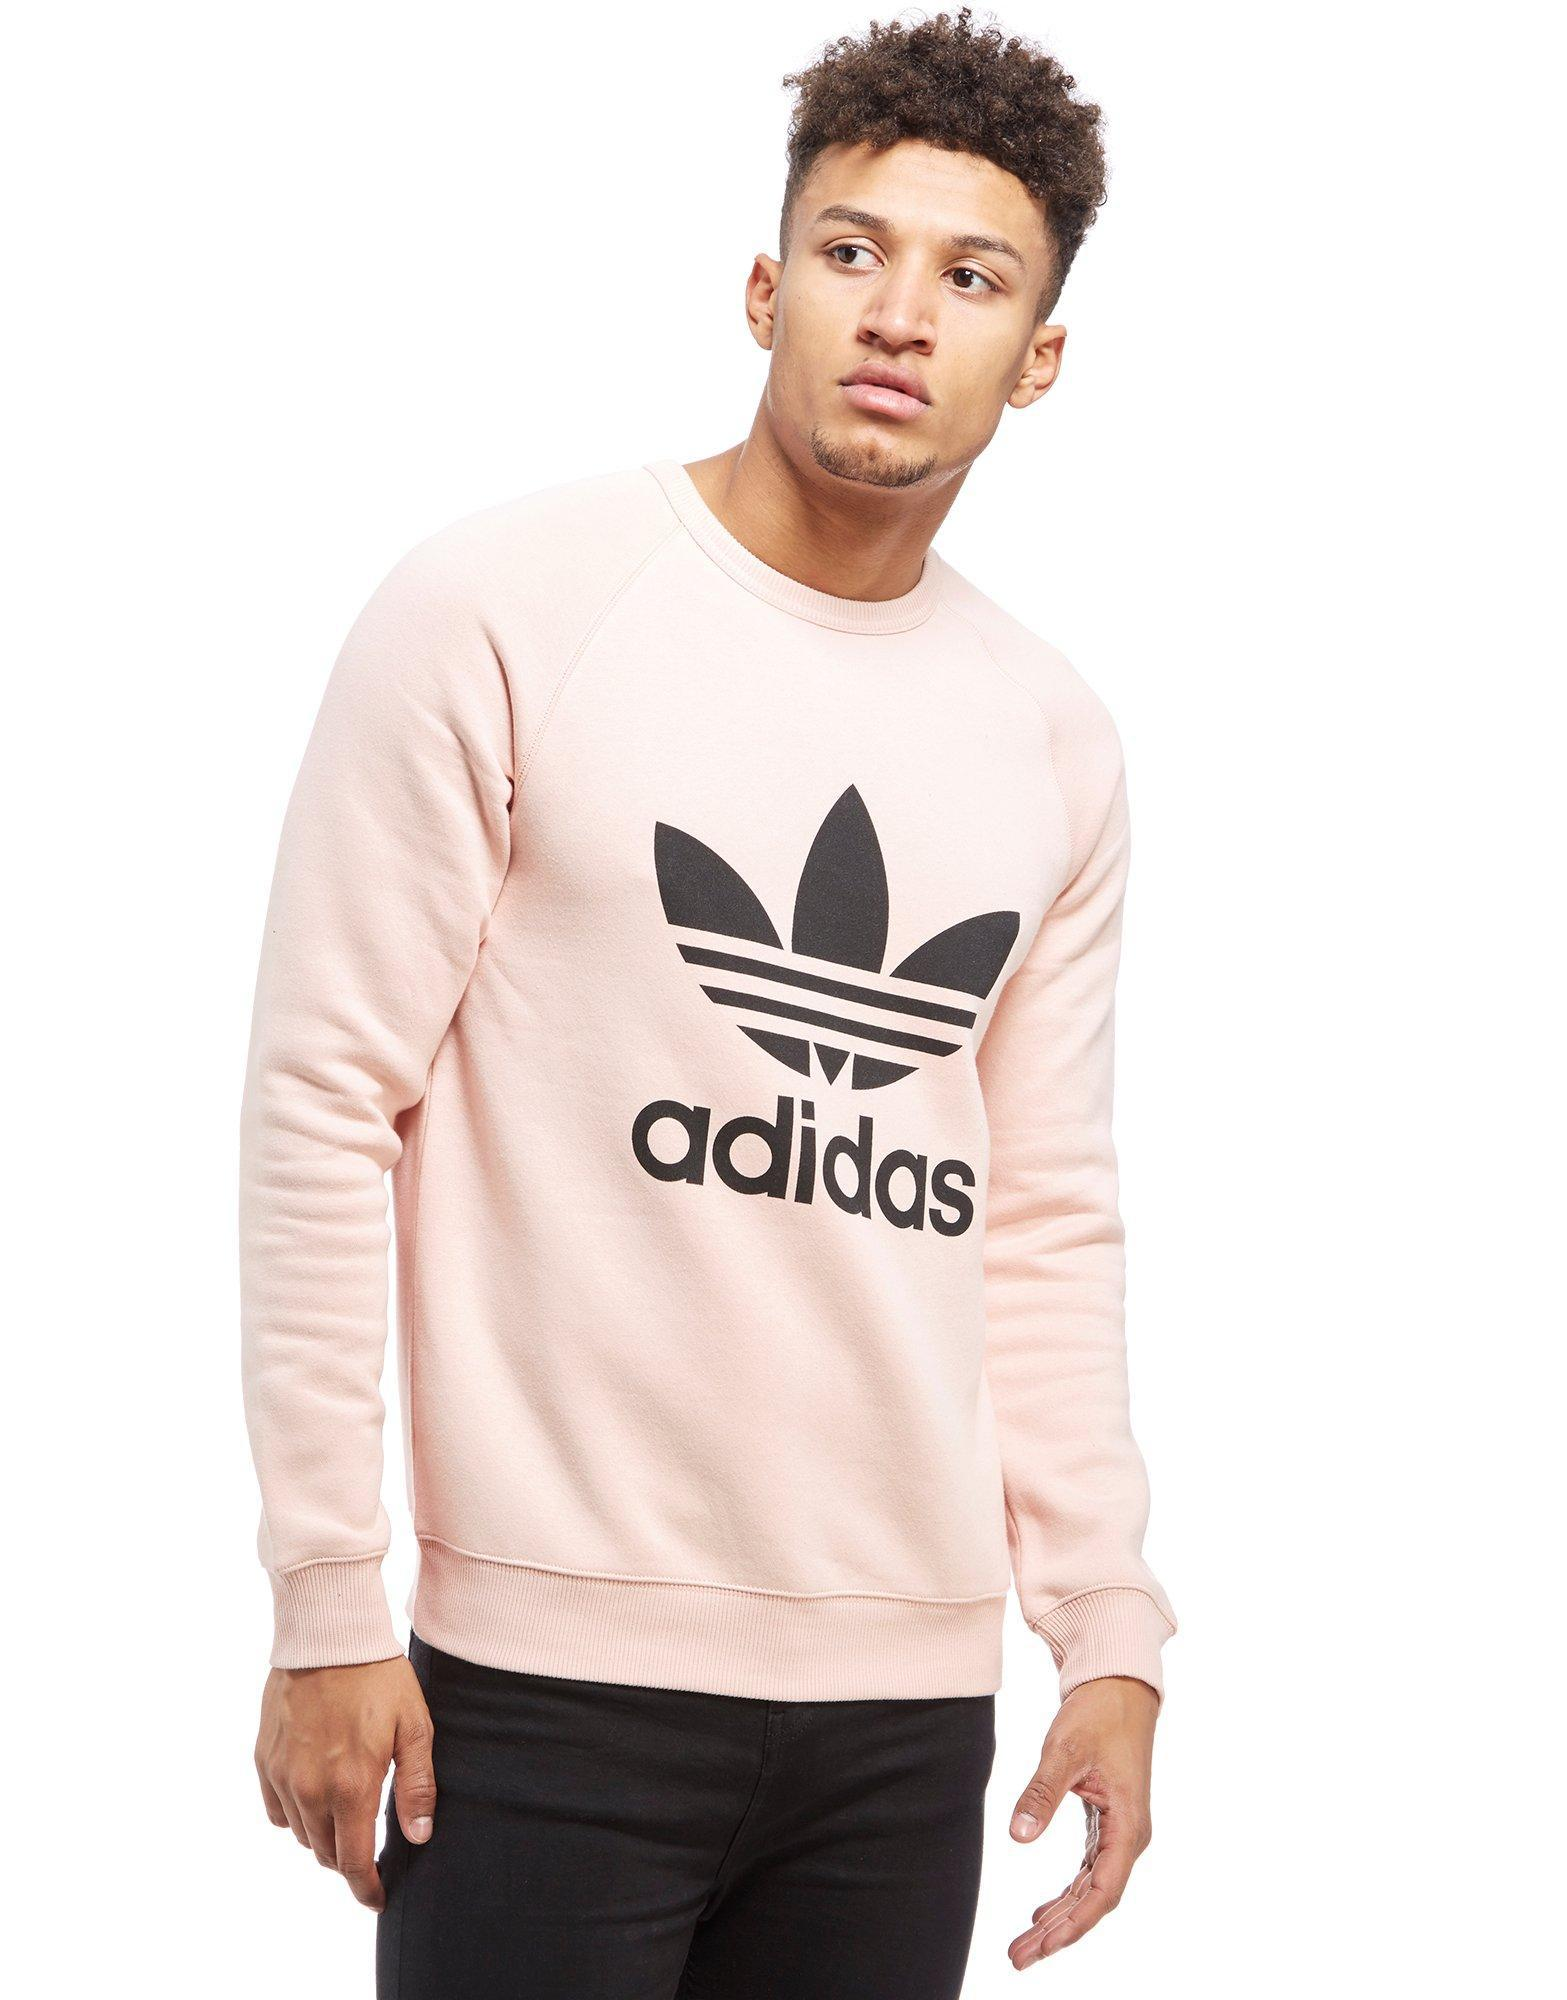 Predecesor usted está Sur oeste  pink adidas sweater Online Shopping for Women, Men, Kids Fashion &  Lifestyle|Free Delivery & Returns! -